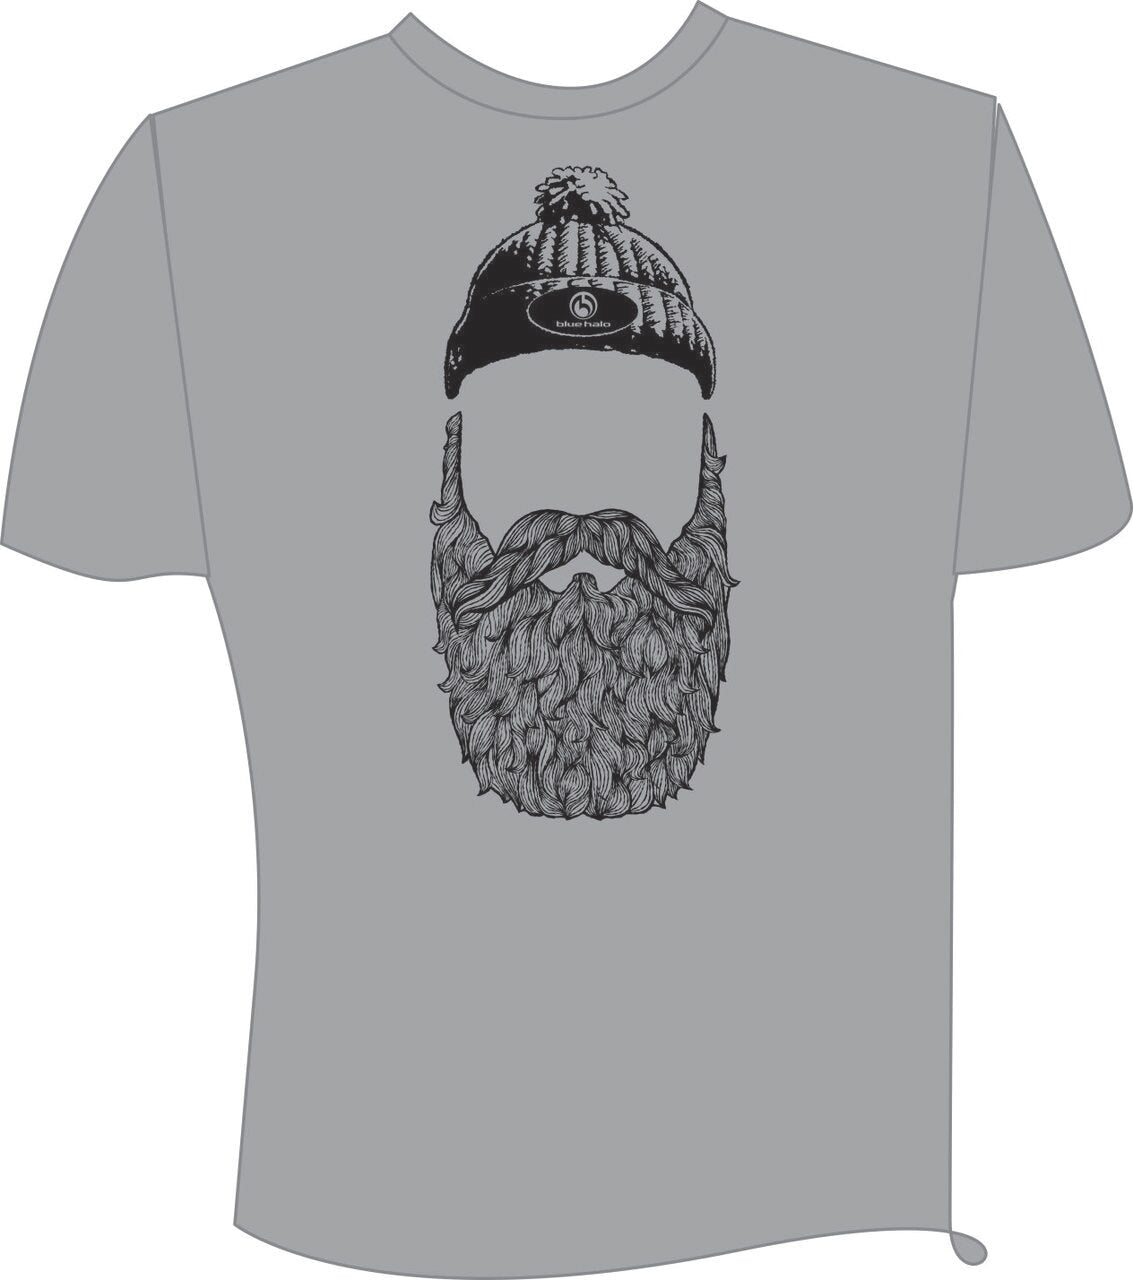 Bearded Man T-Shirt